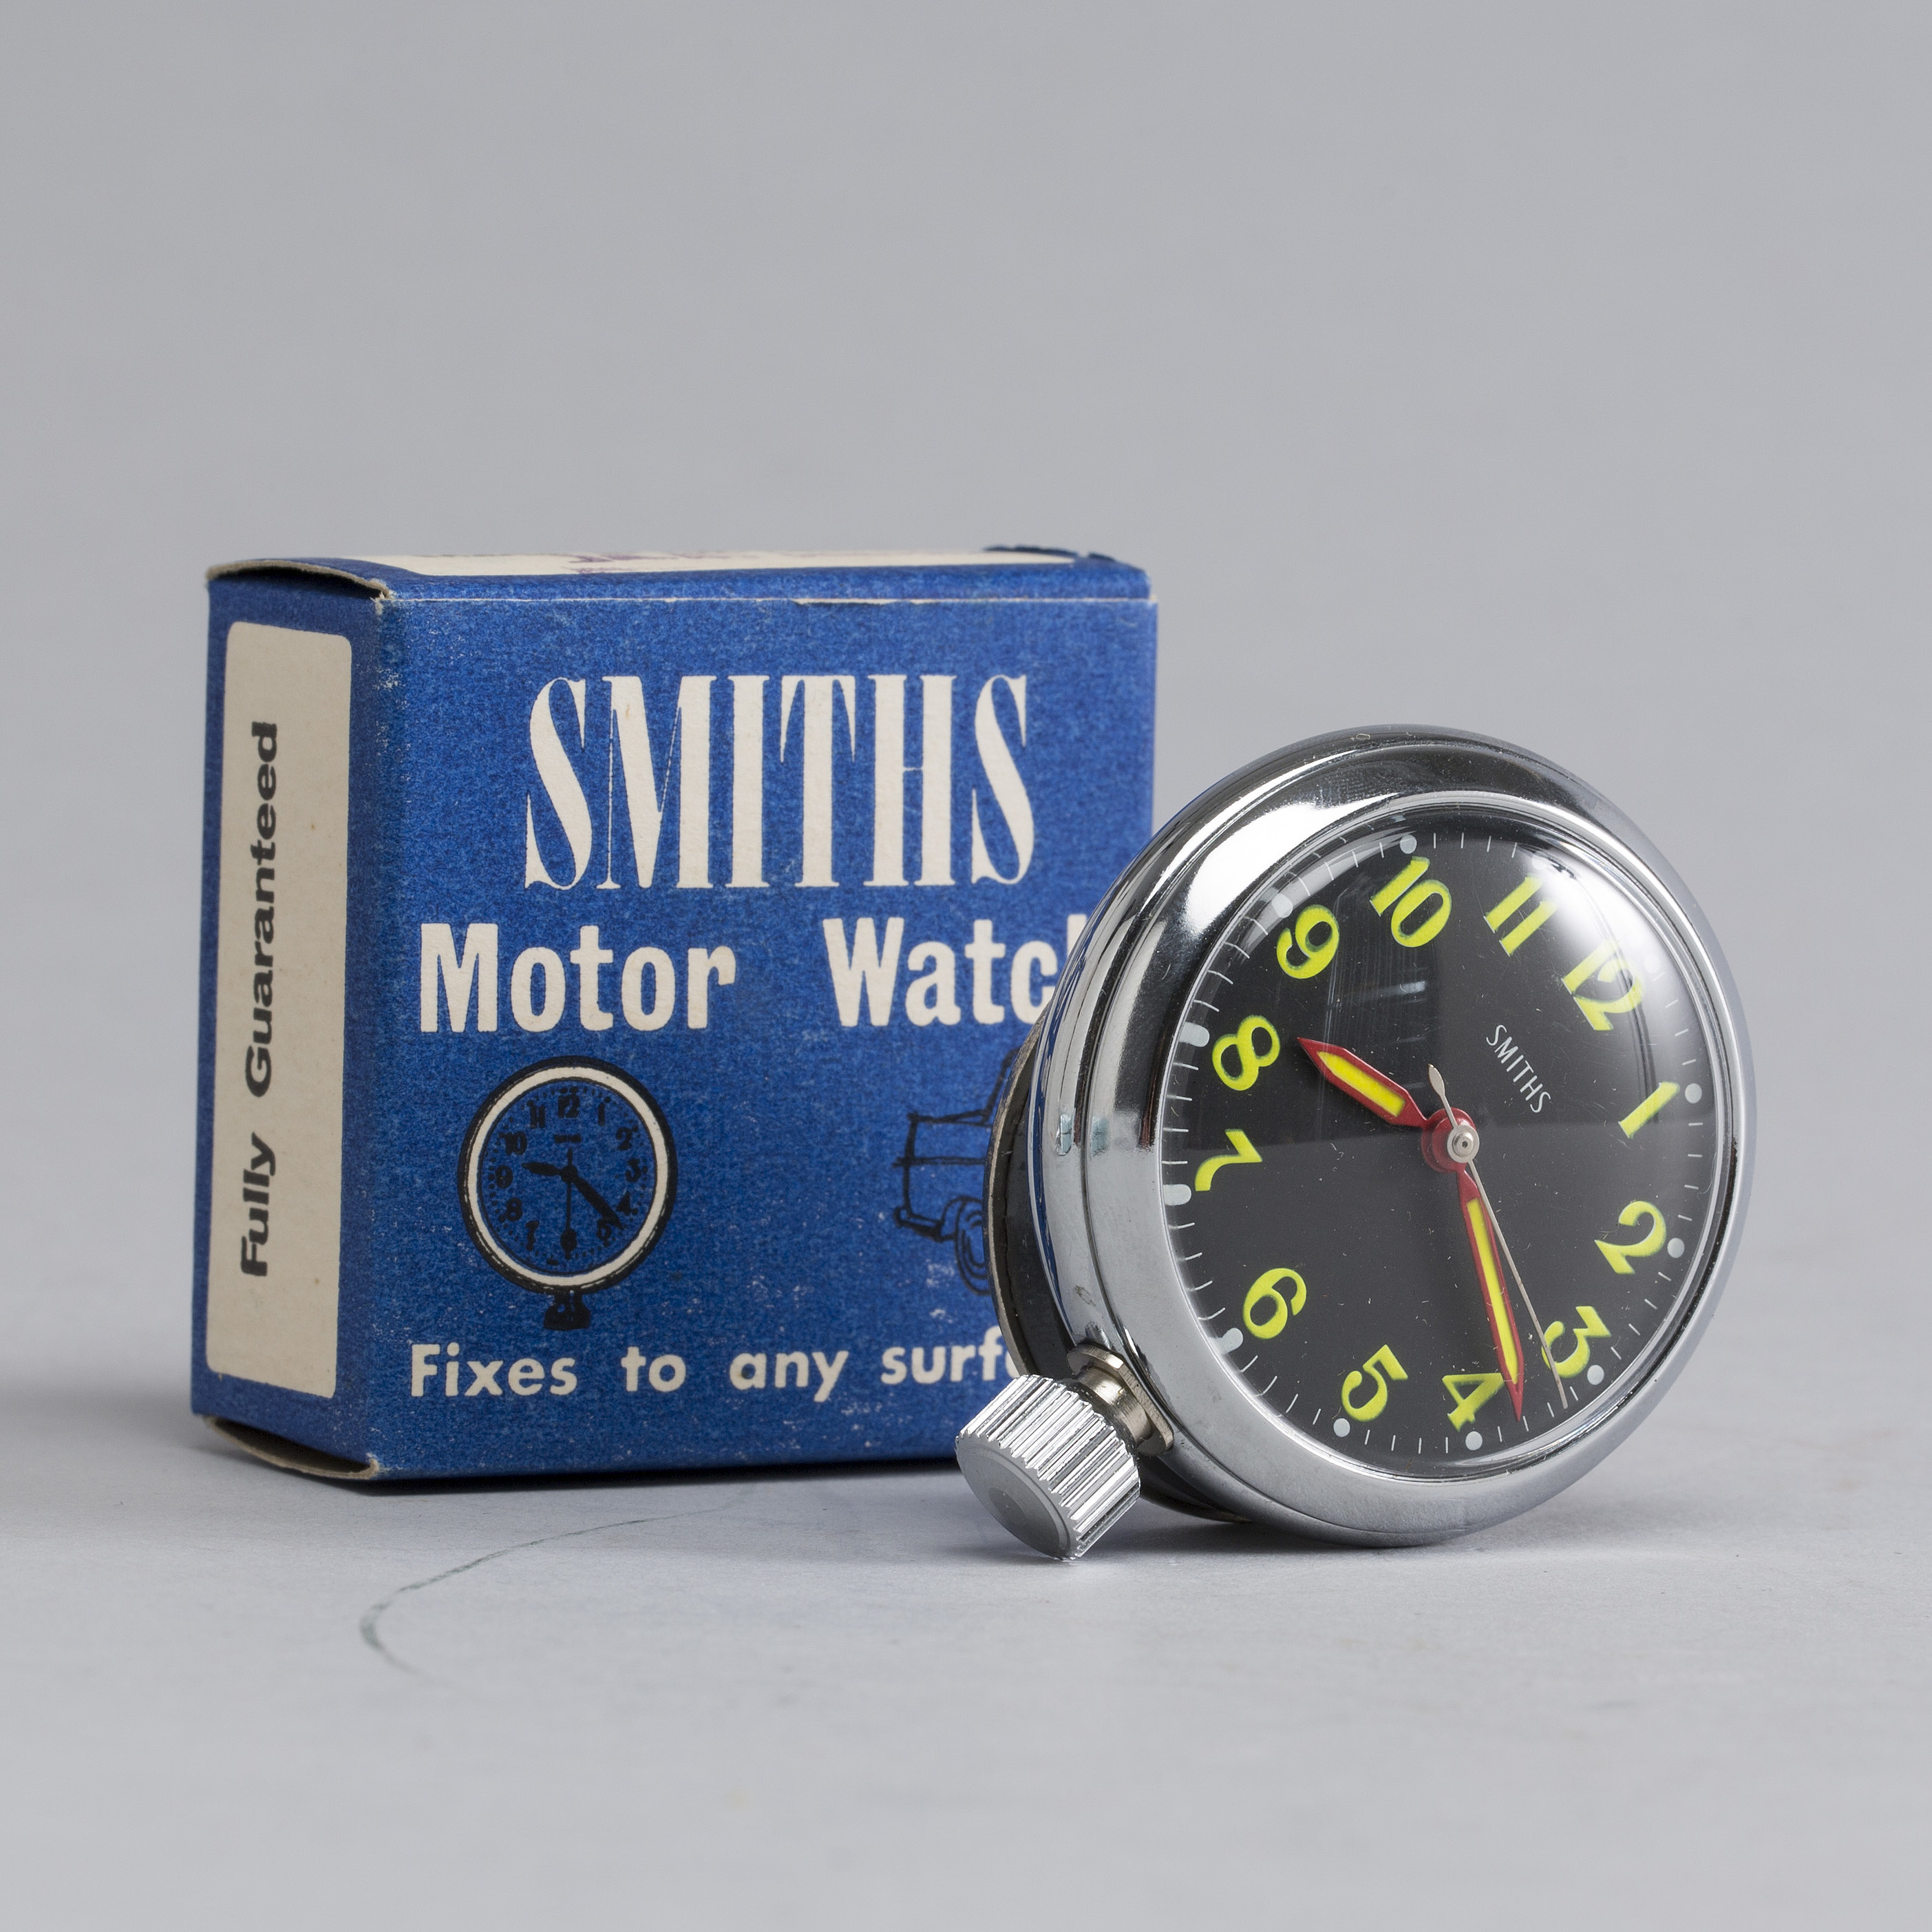 SMITHS MOTOR WATCH, Great Britain mid 20th century  - Bukowskis